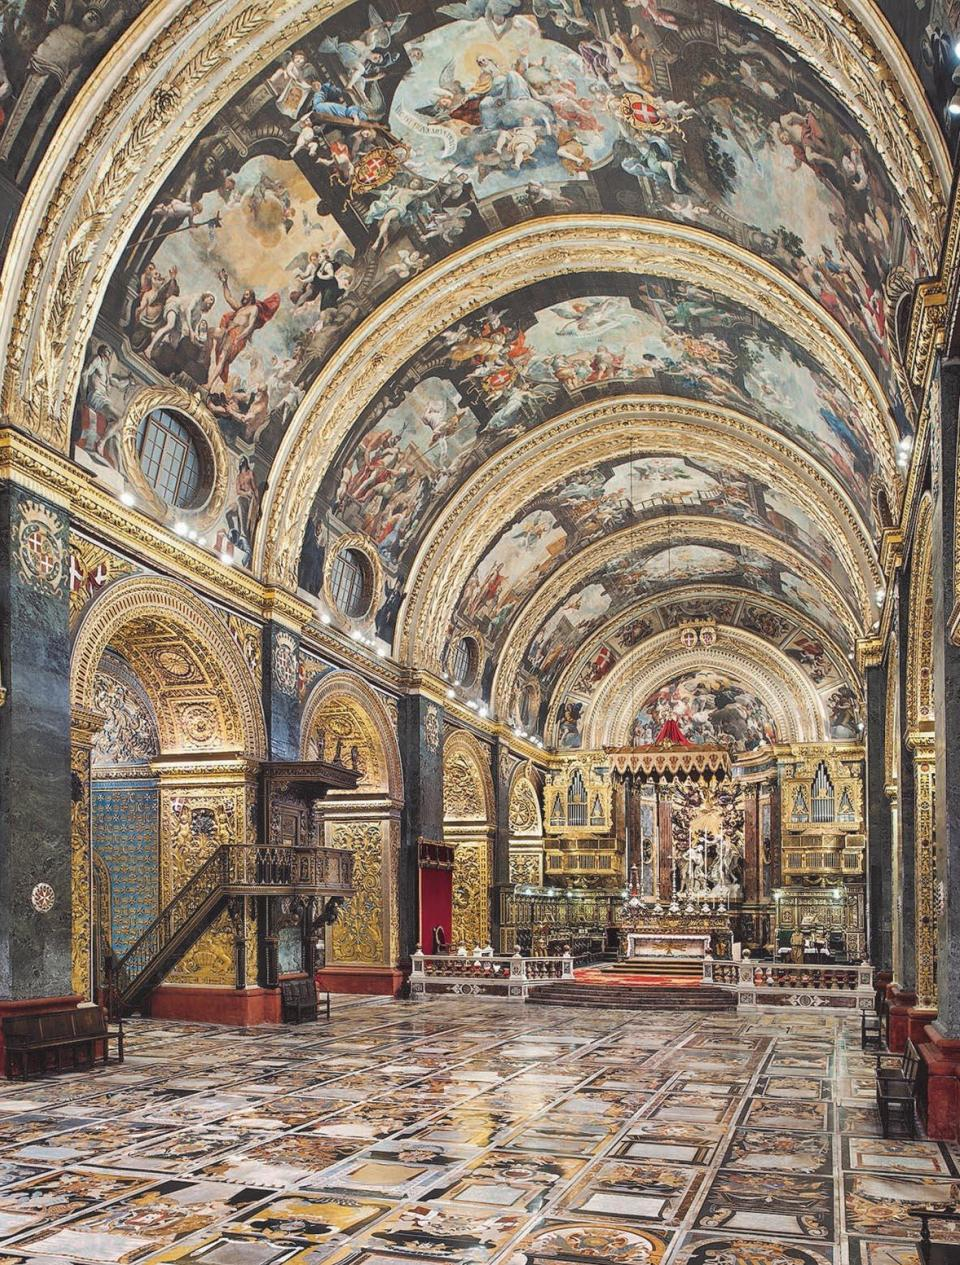 Interior view of St. John's Co-Cathedral, Valletta